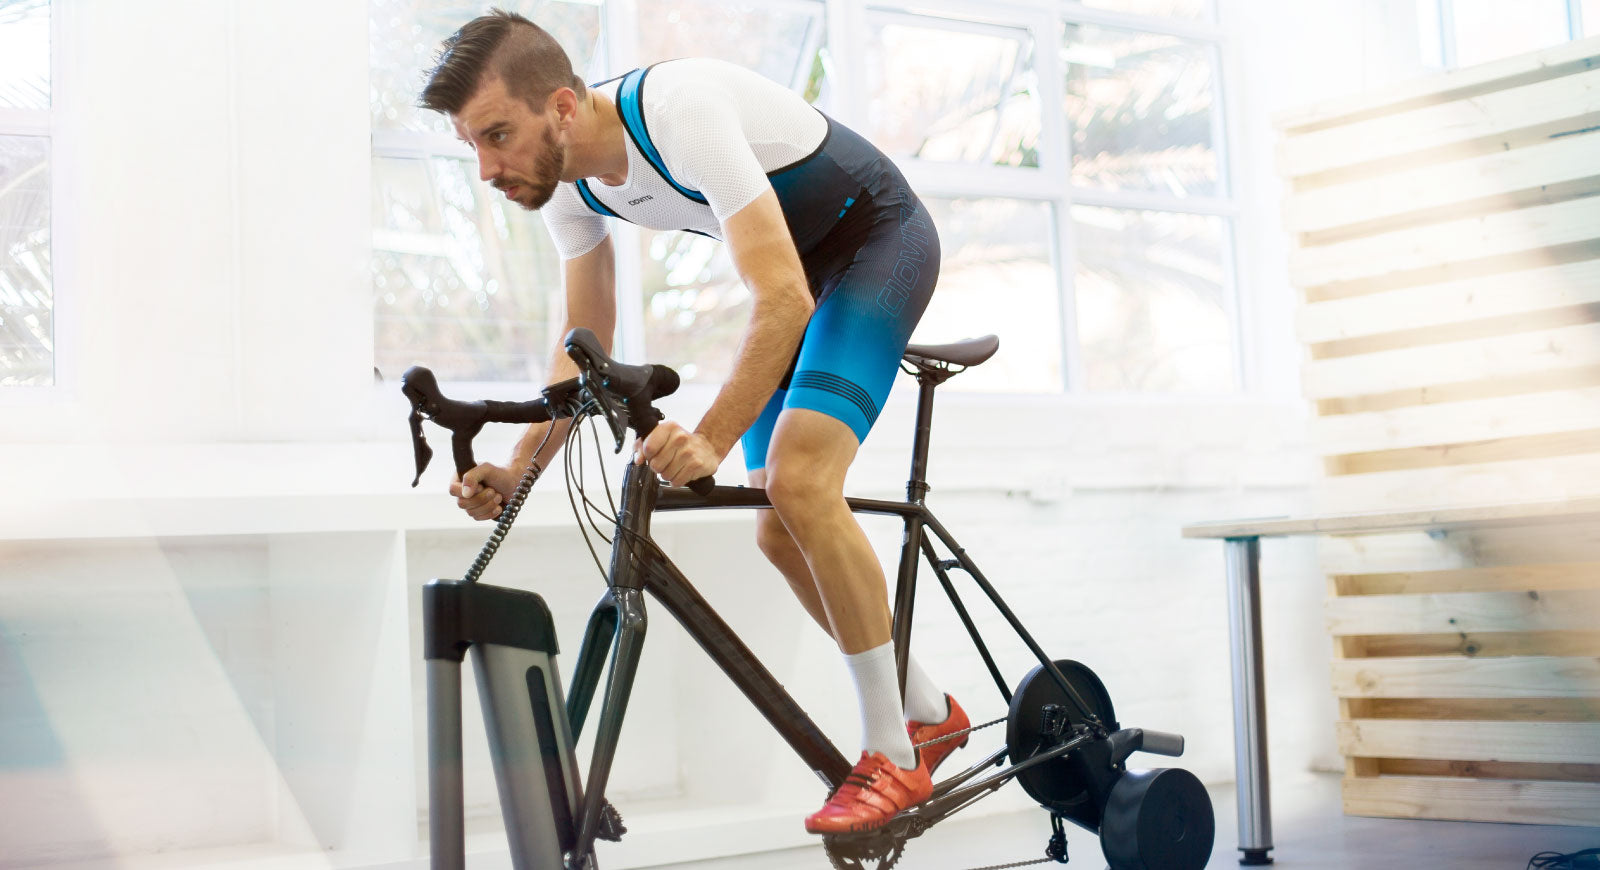 Isolation cycling - Cinetica Indoor Training Bib